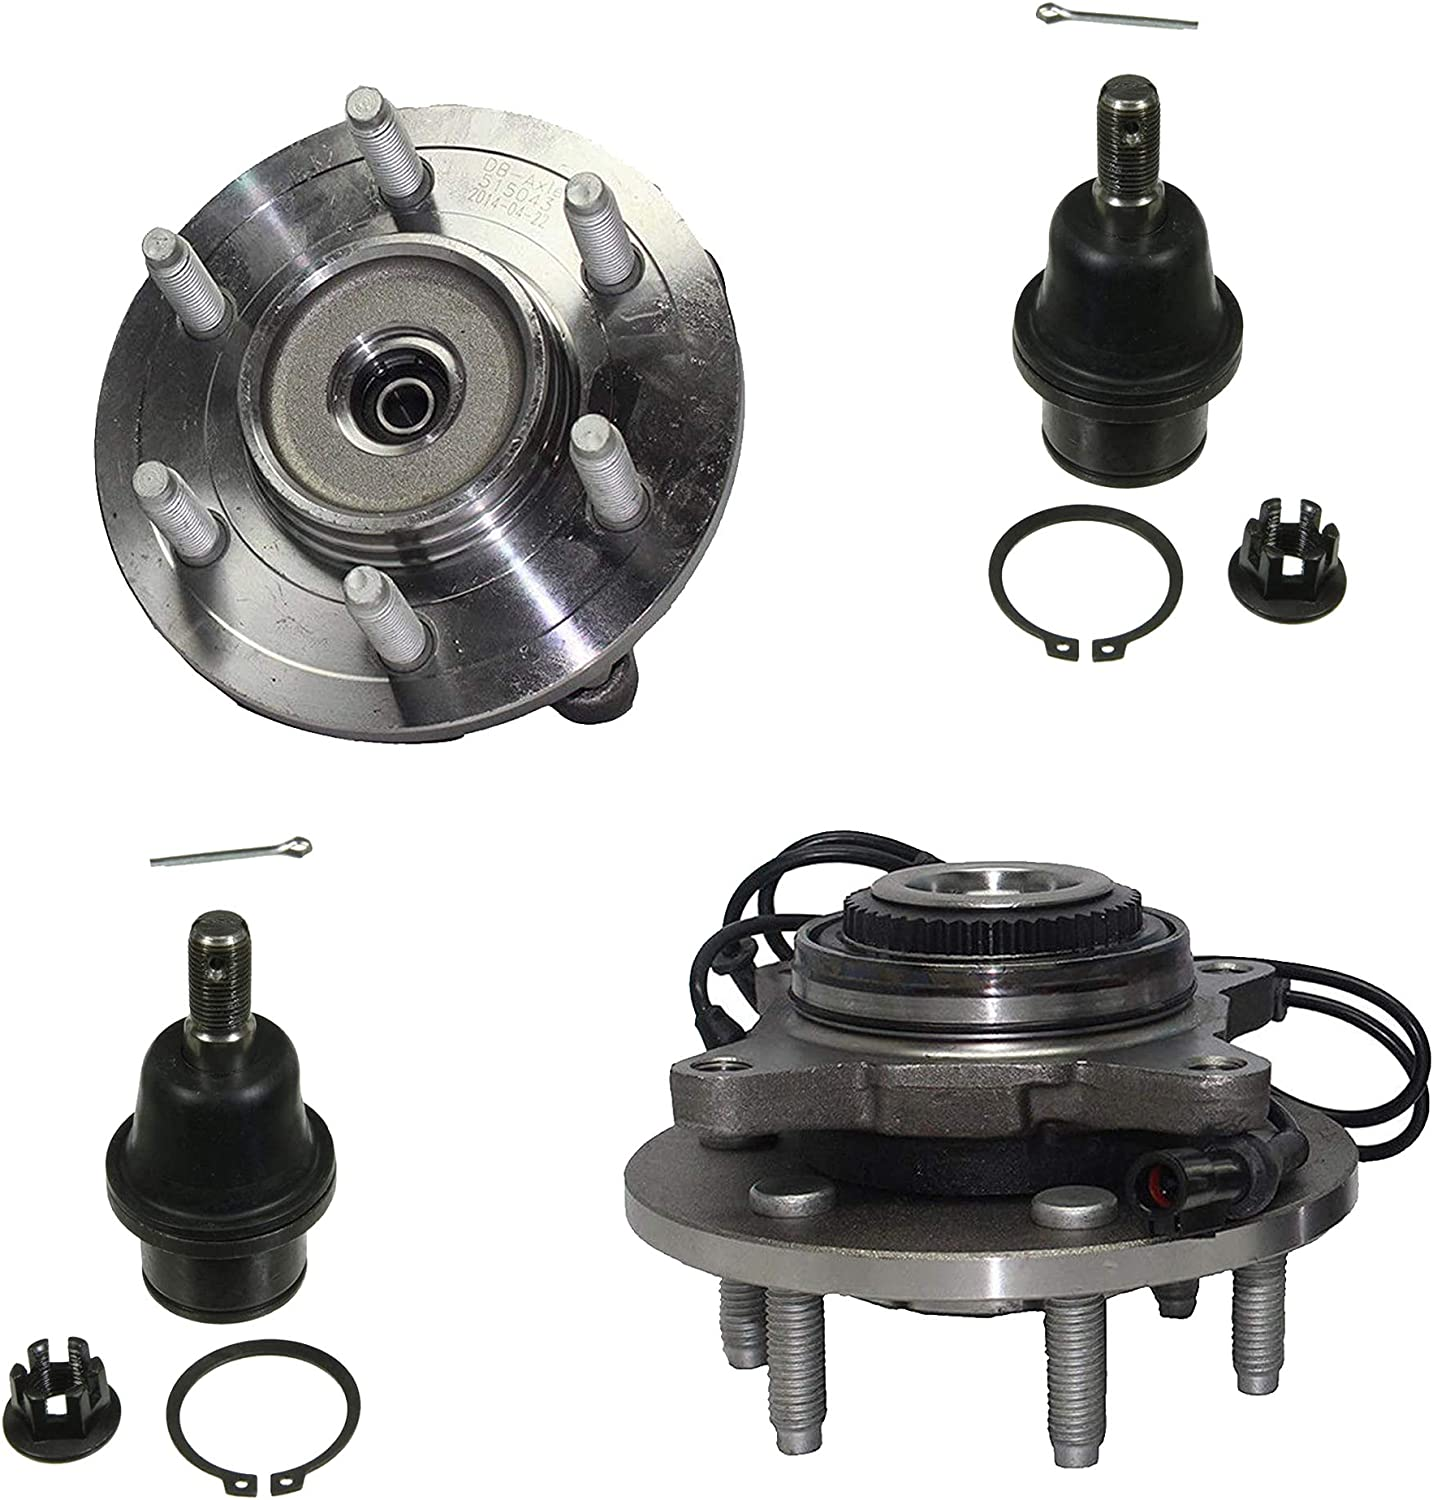 Detroit Axle - Pair セットアップ 2 ランキング総合1位 Front Wheel and Hub Assemblies w Bearing